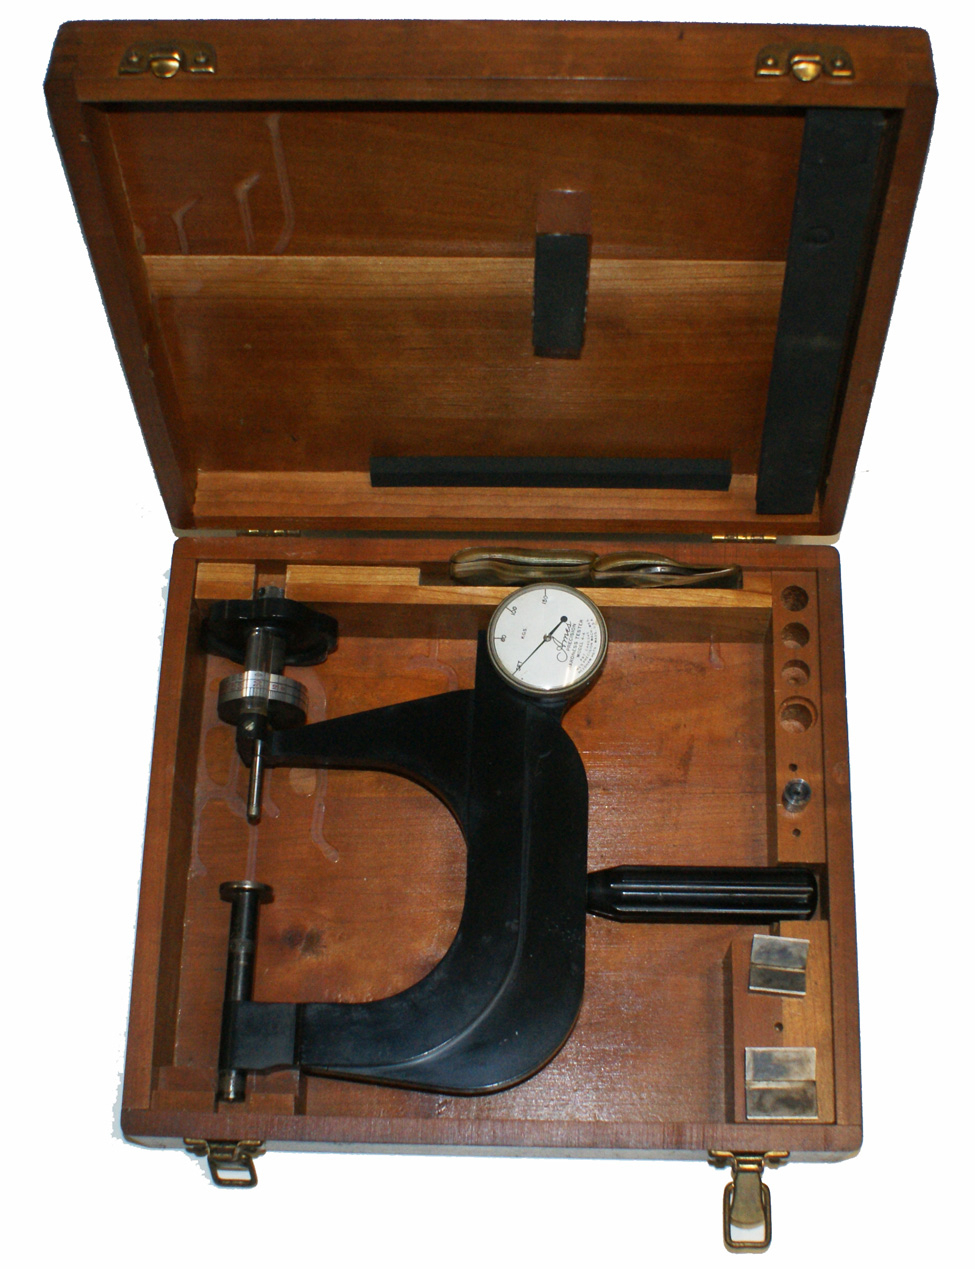 Ames 4x4 Hardness Tester - Portable